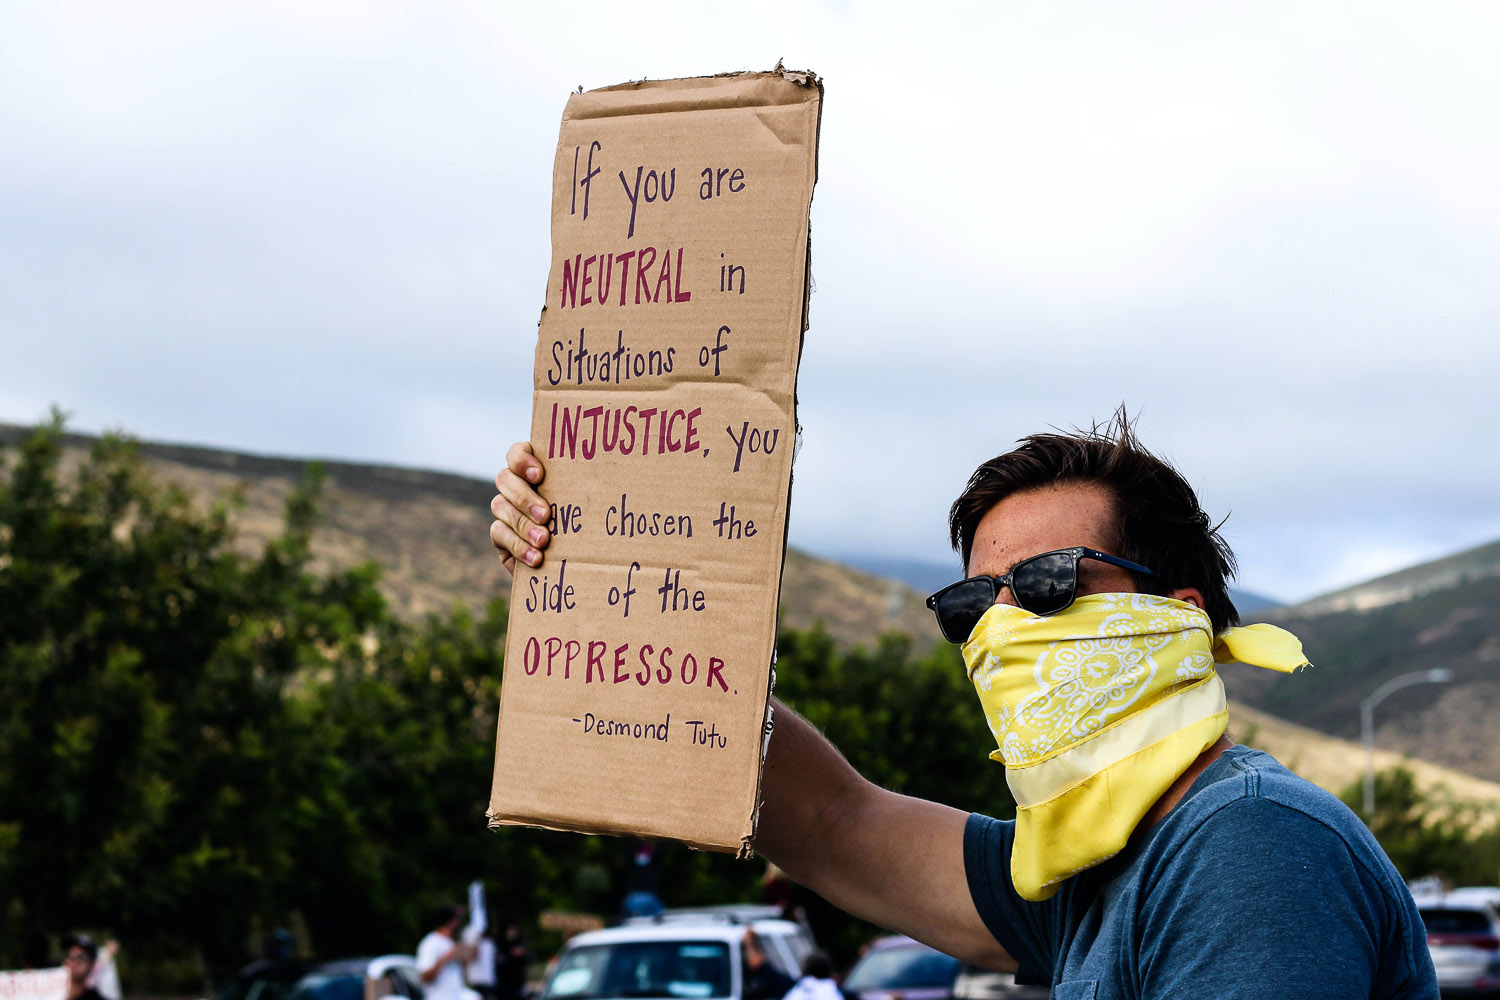 Protester wearing a mask and holding a sign